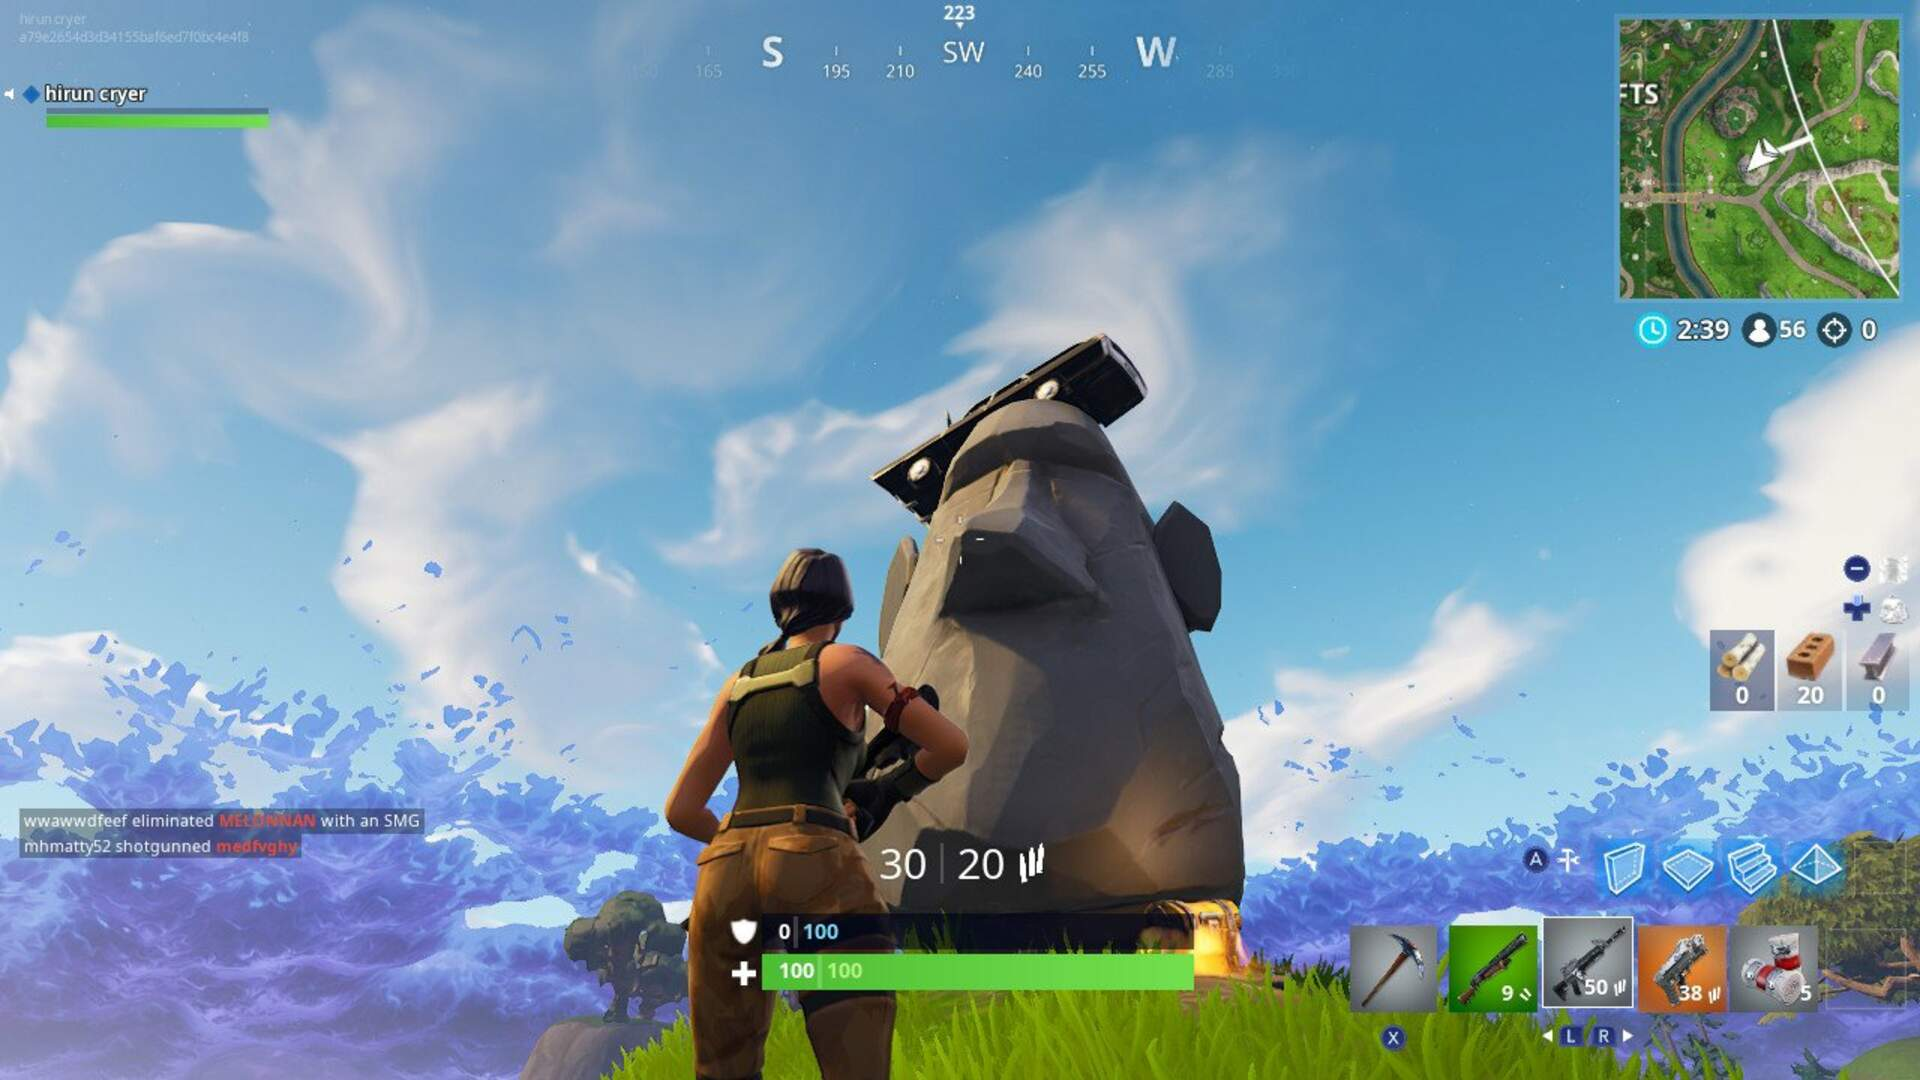 Fortnite Stone Heads Guide - Where the Stone Heads are Looking Fortnite Challenge - Hidden Star Location